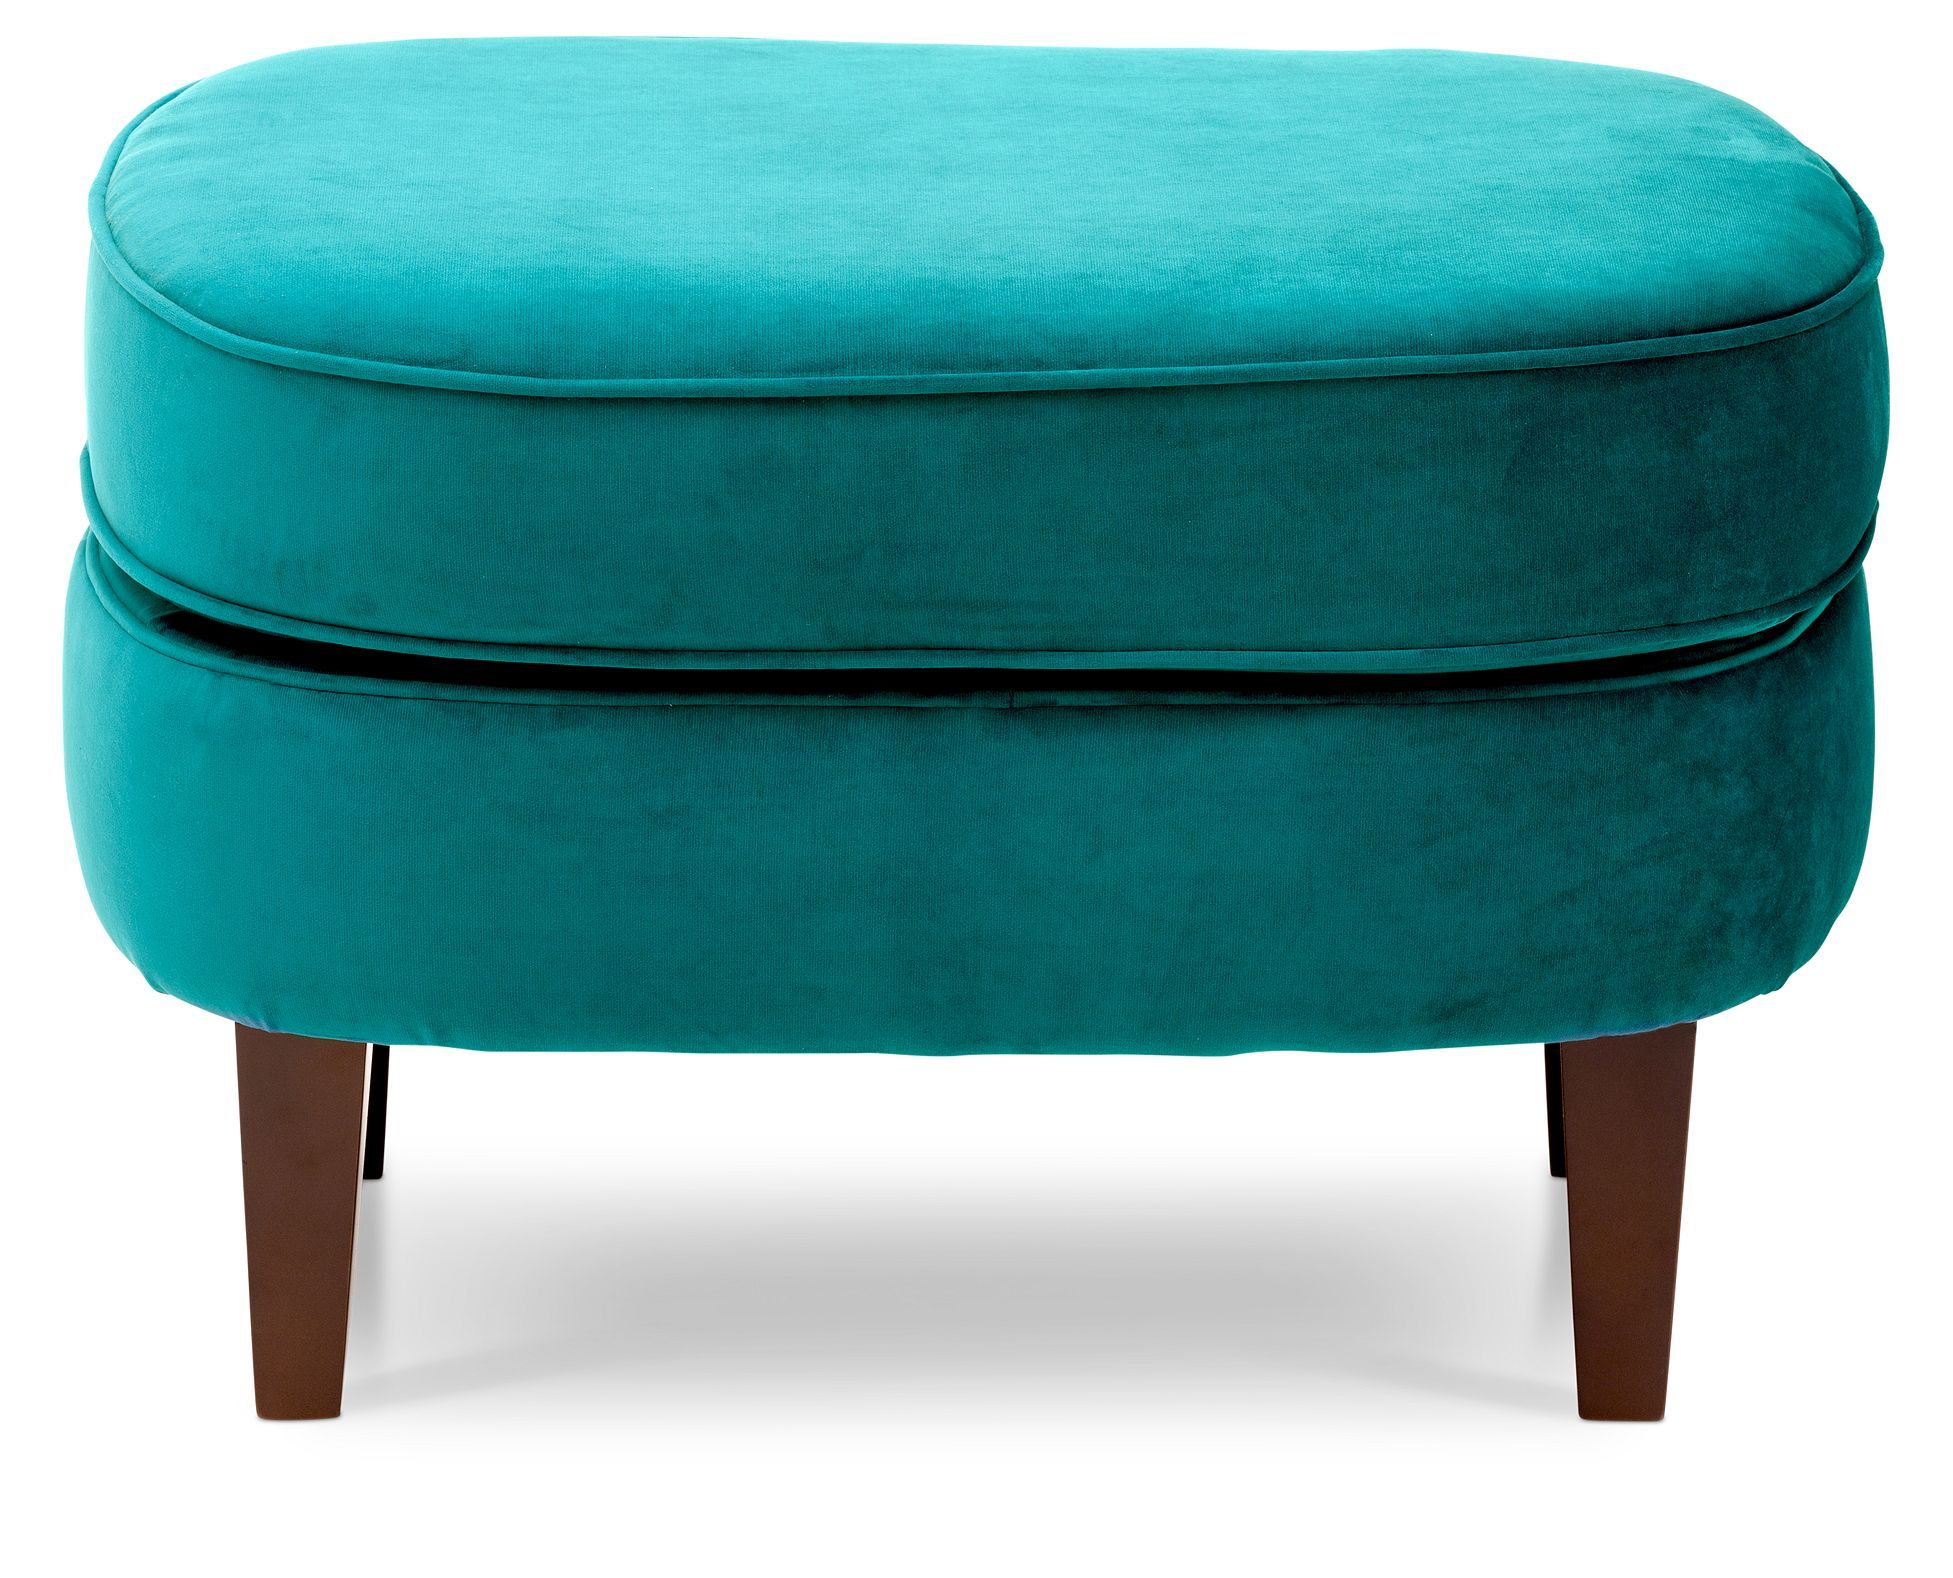 Chic And Modern The Gabriella Accent Ottoman Has A Tailored Look